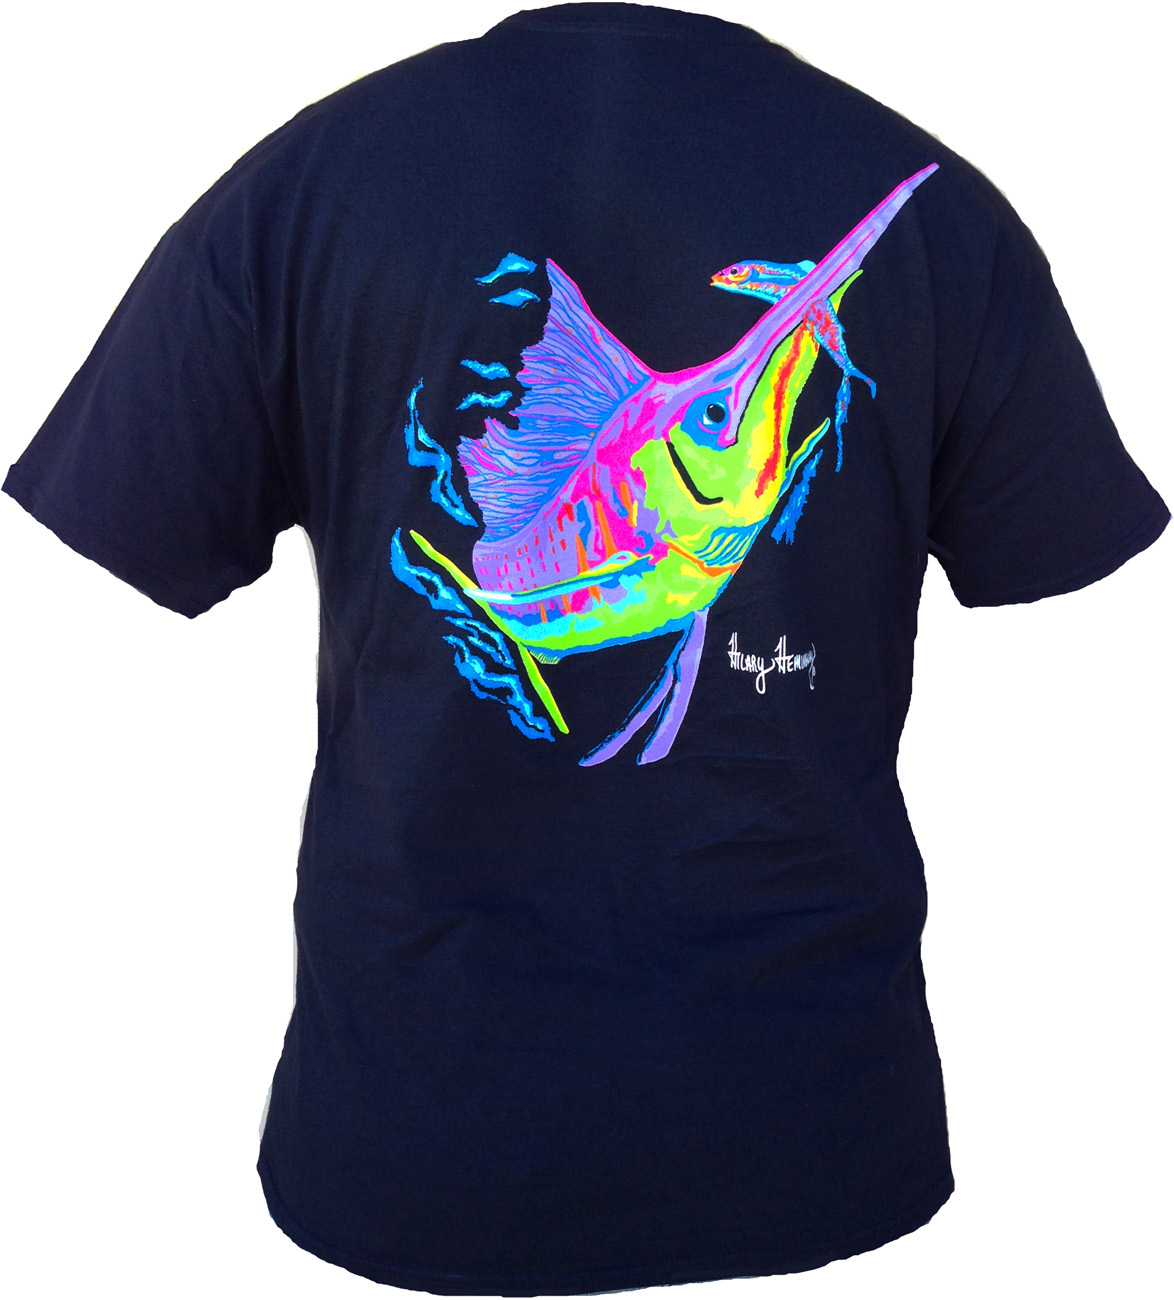 Sailfish design on men black short sleeve shirt